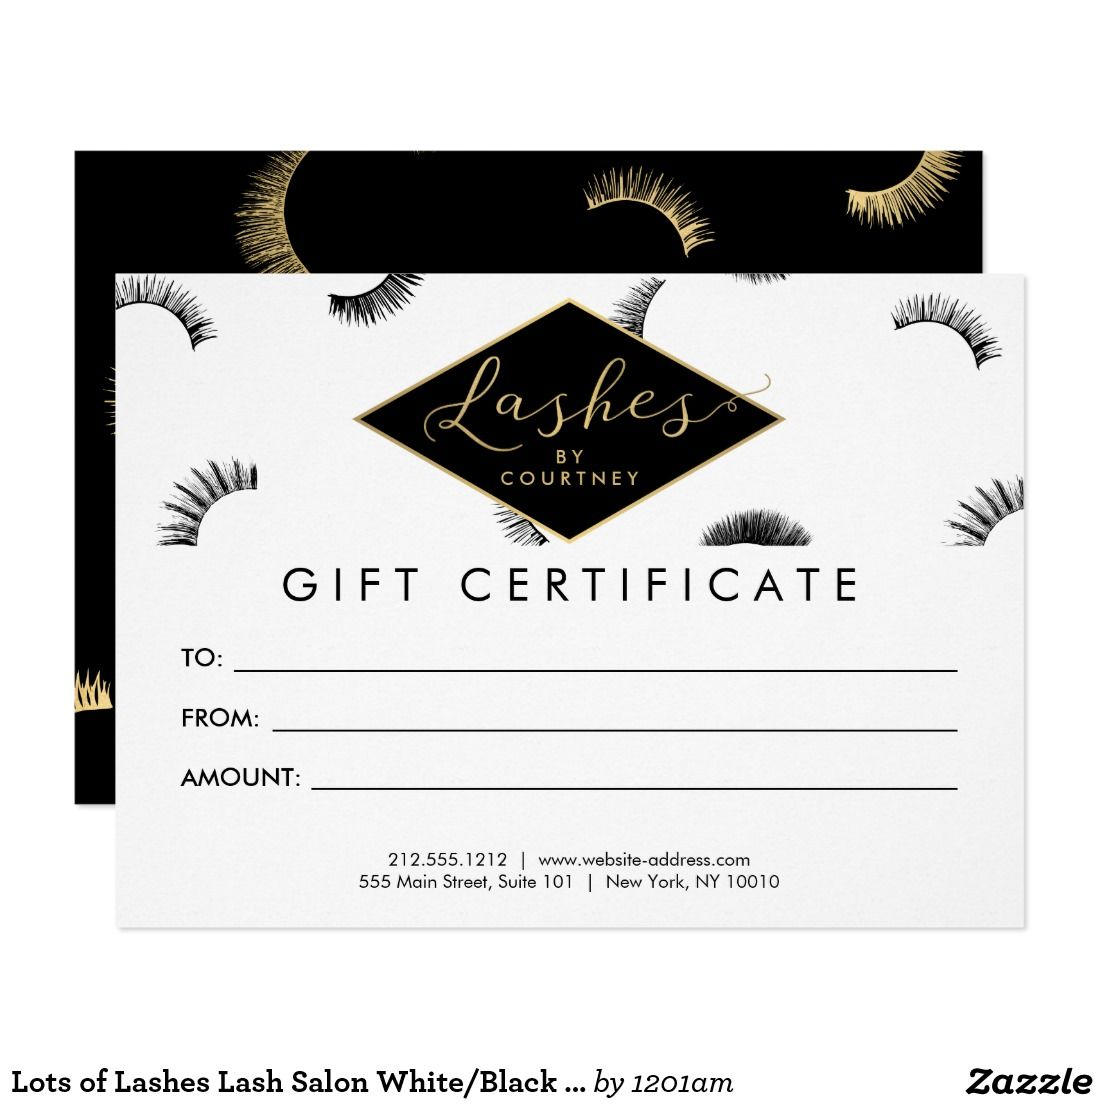 Lots Of Lashes Lash Salon White Black Gift Card Zazzle Com In 2021 Gift Certificate Template Gift Certificates Certificate Templates